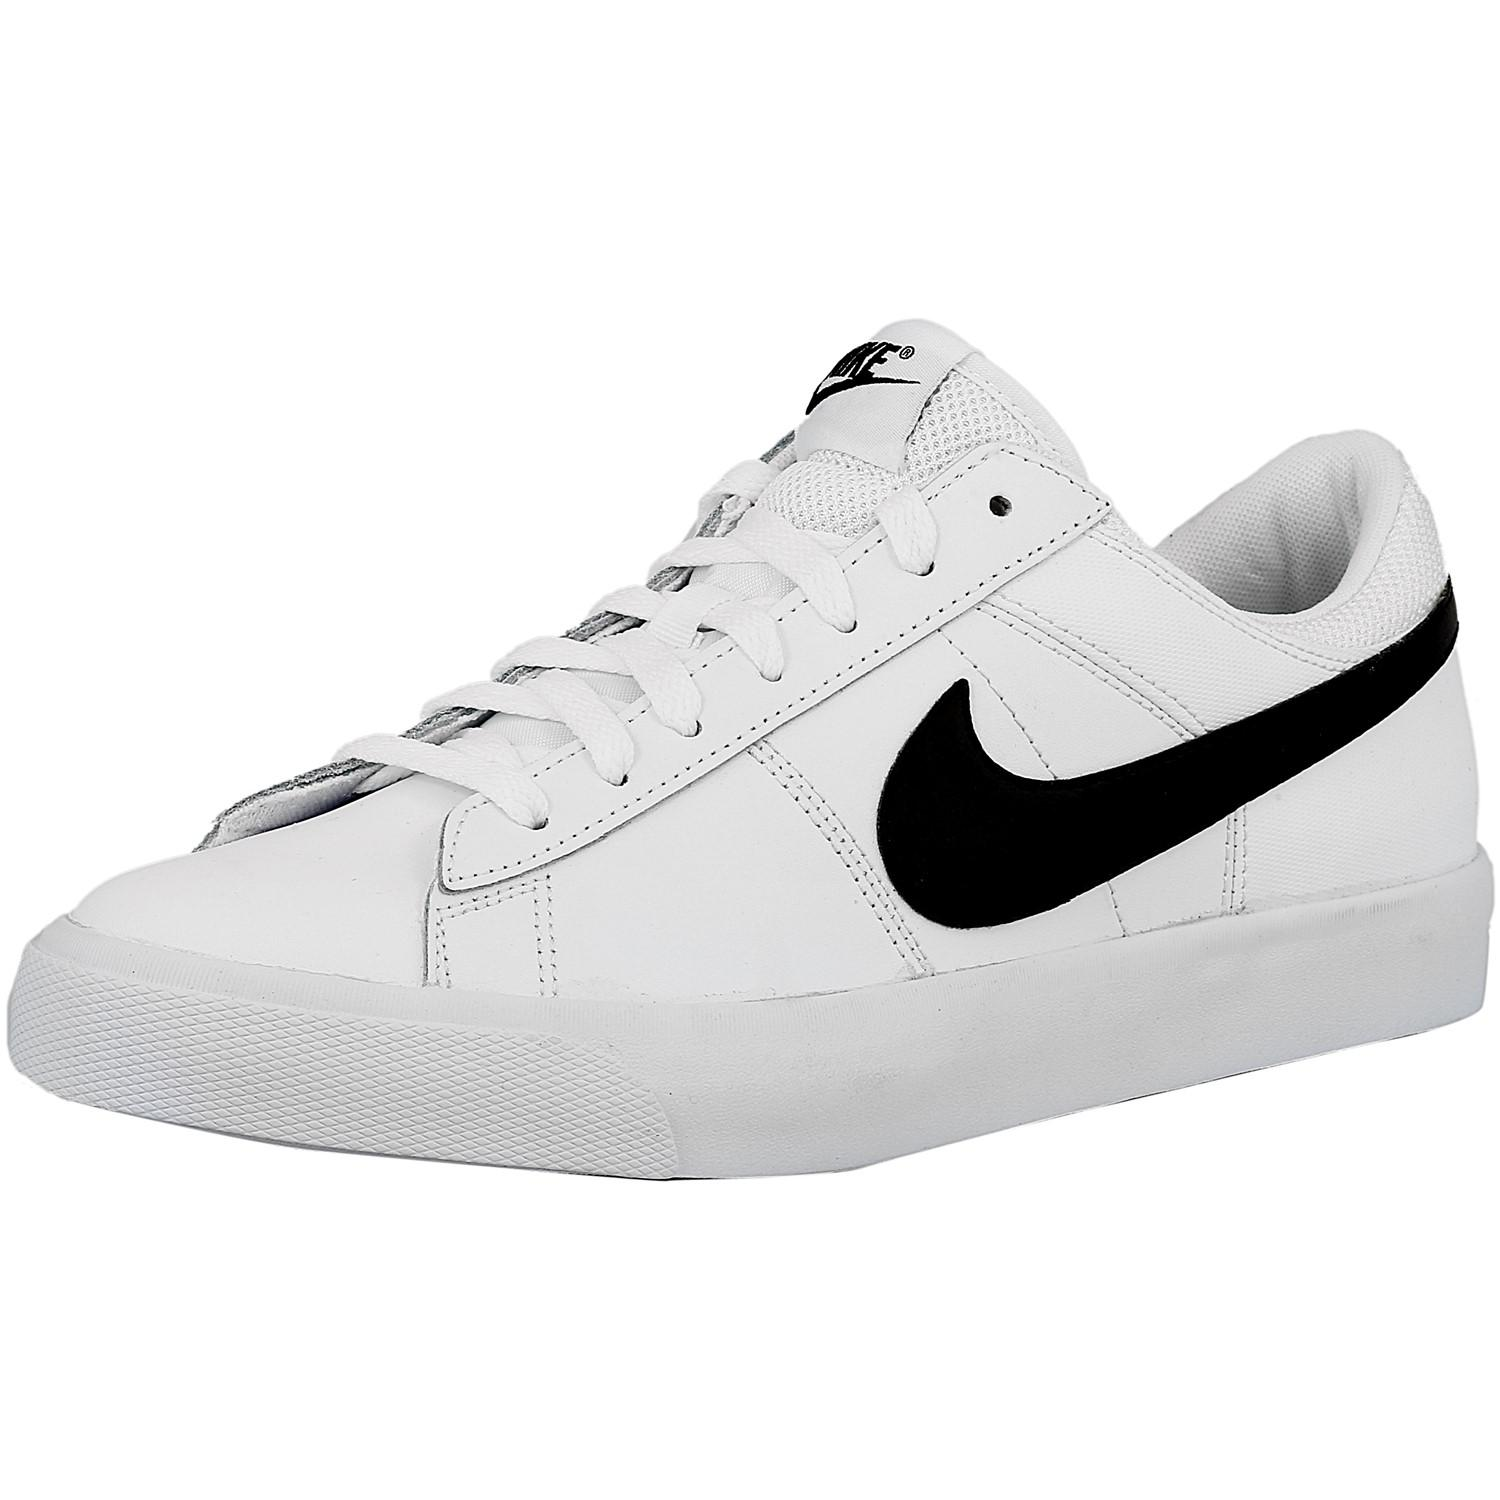 the latest a8762 b3799 nike -White-Black-Black-White-Match-Supreme-White-Black-black-white-Ankle-high-Leather-Tennis-Shoe.jpeg